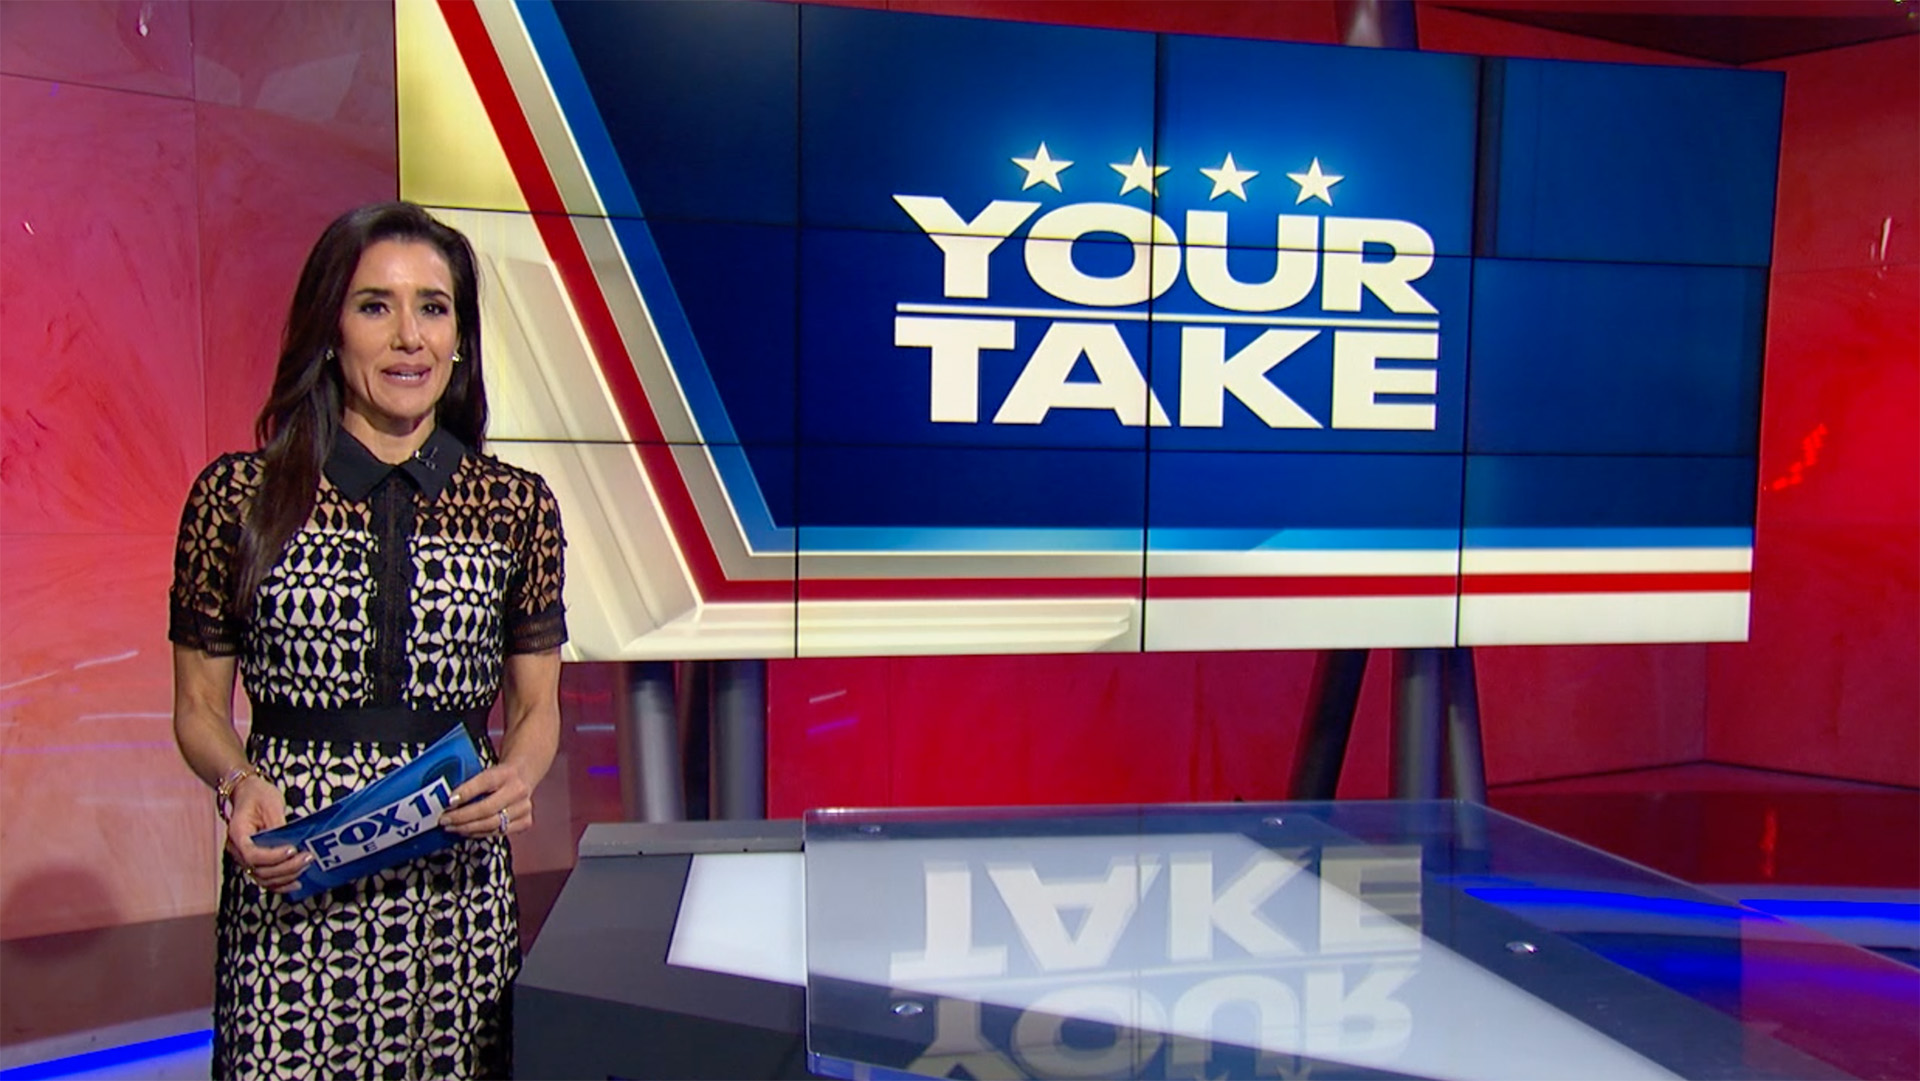 Female anchor standing next to screen with Your Take logo